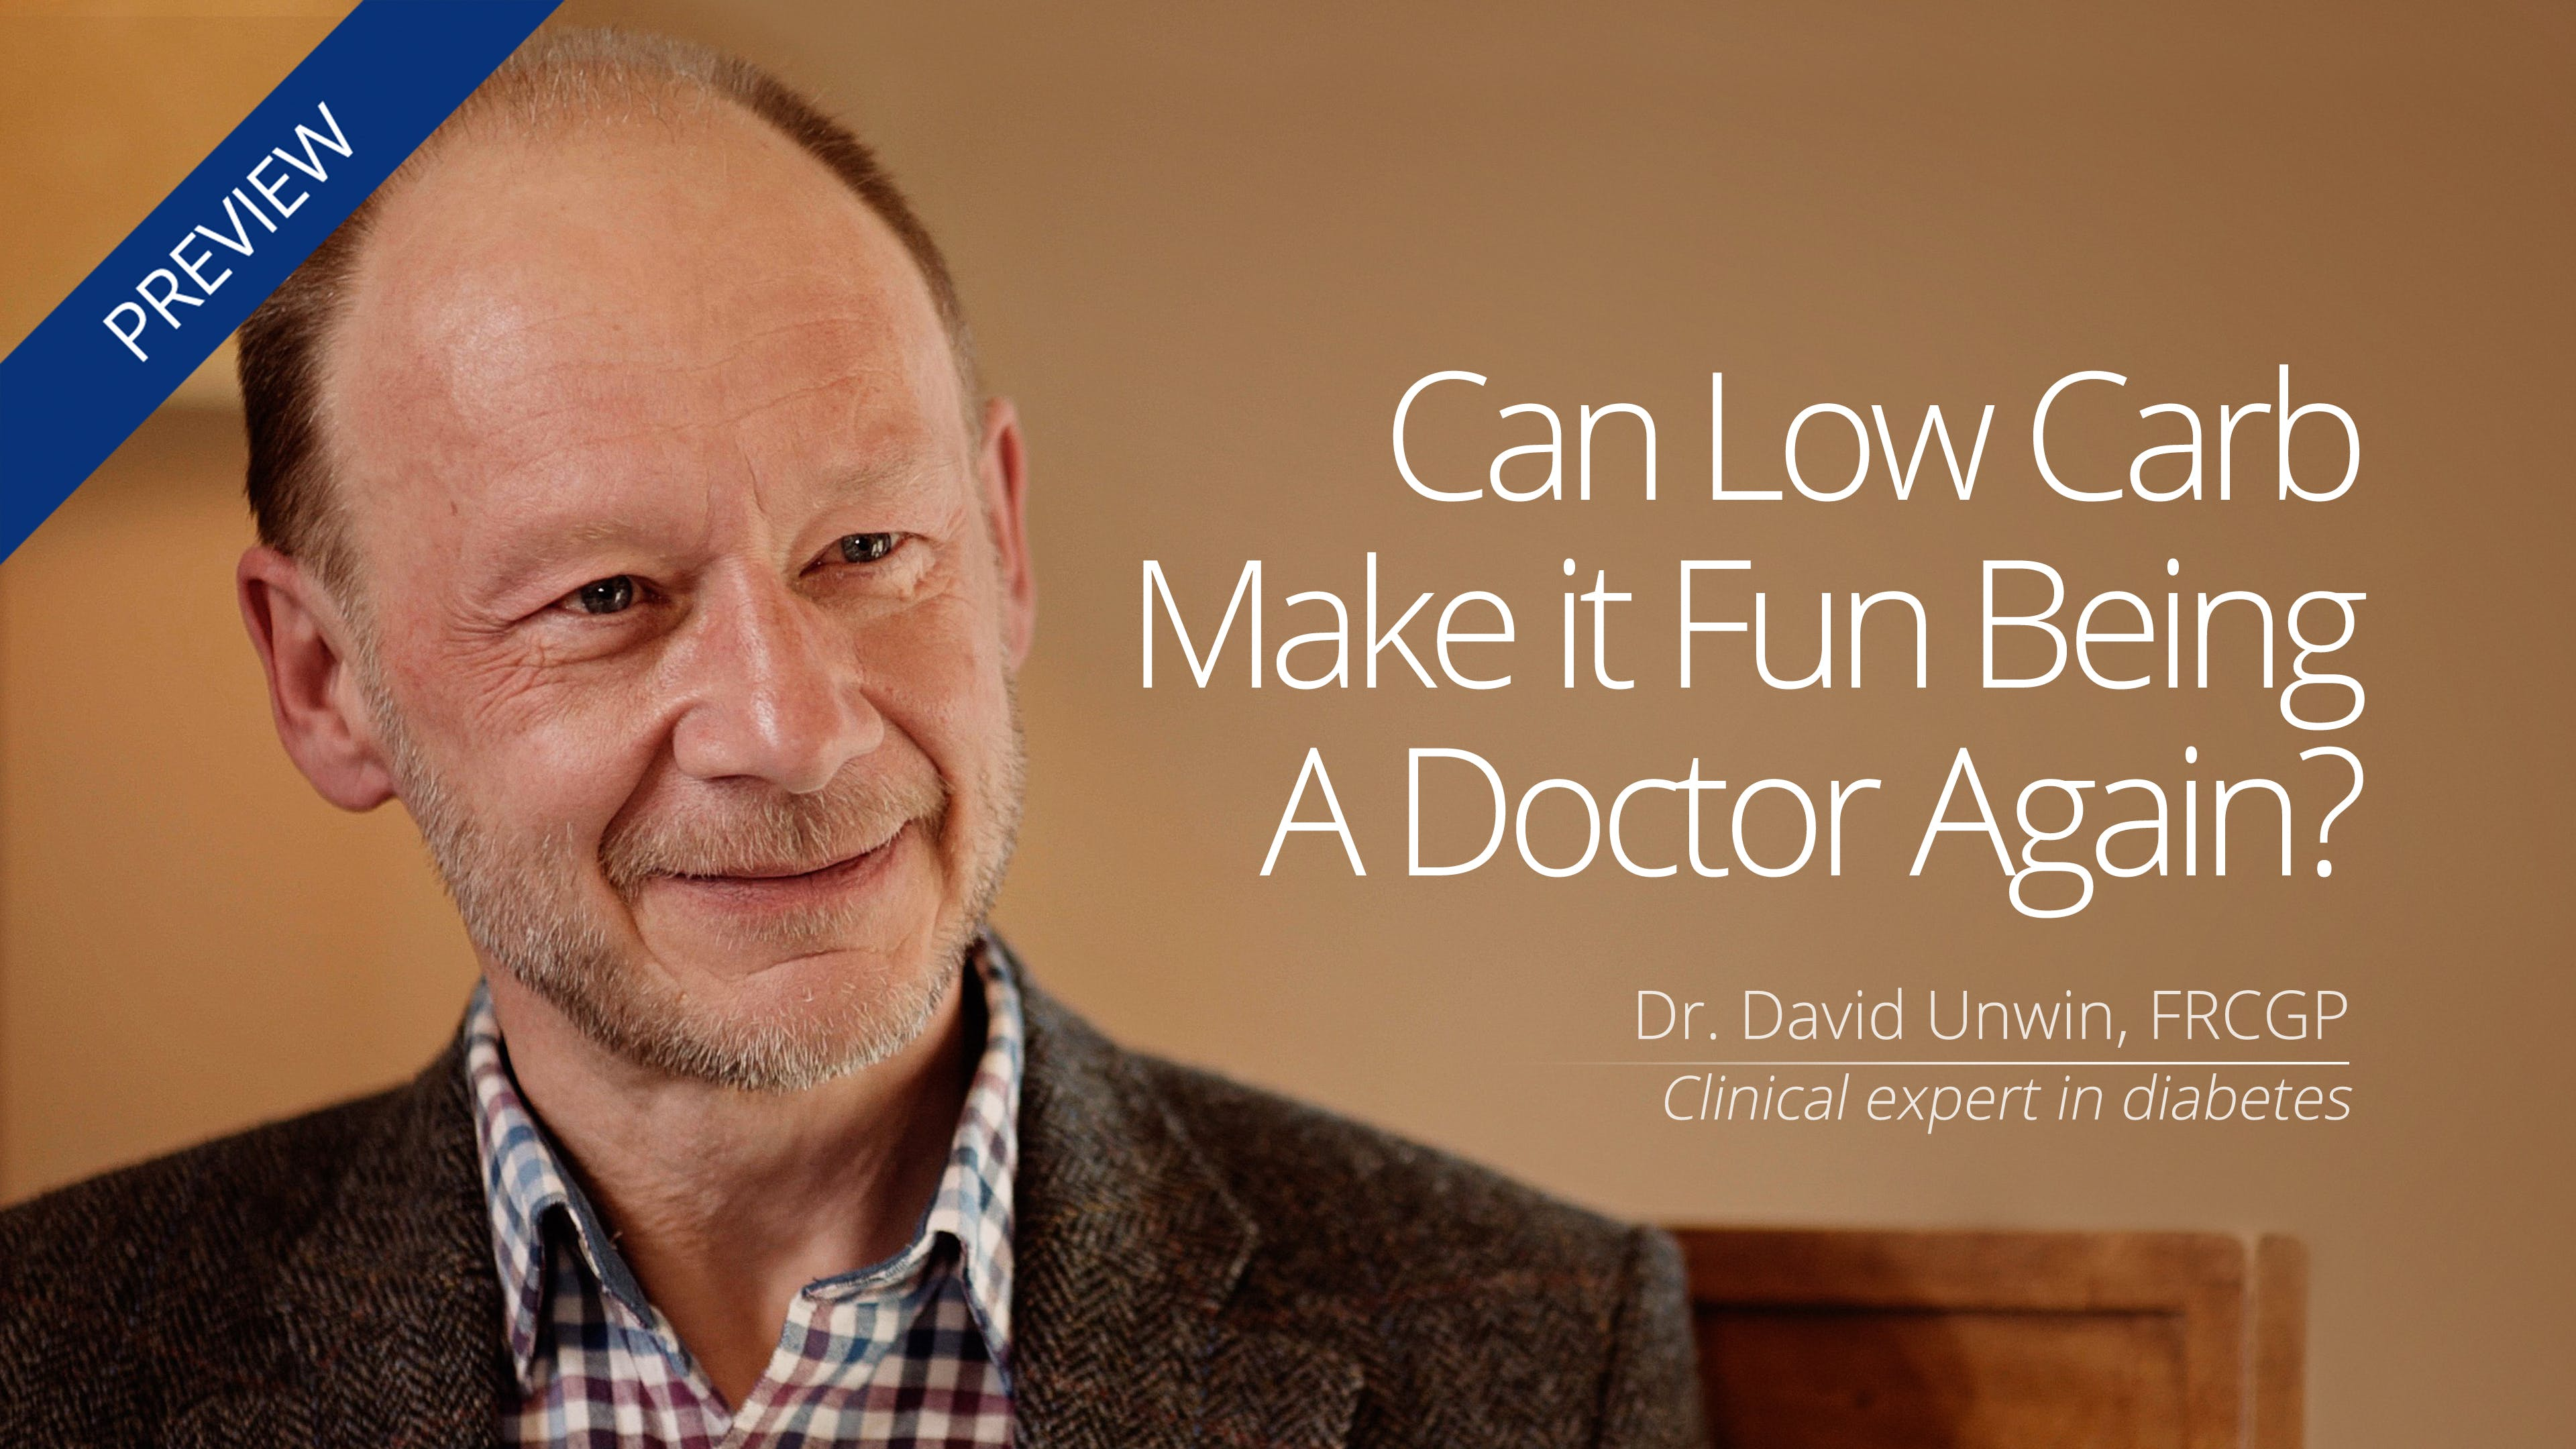 Can low carb make it fun being a doctor again?